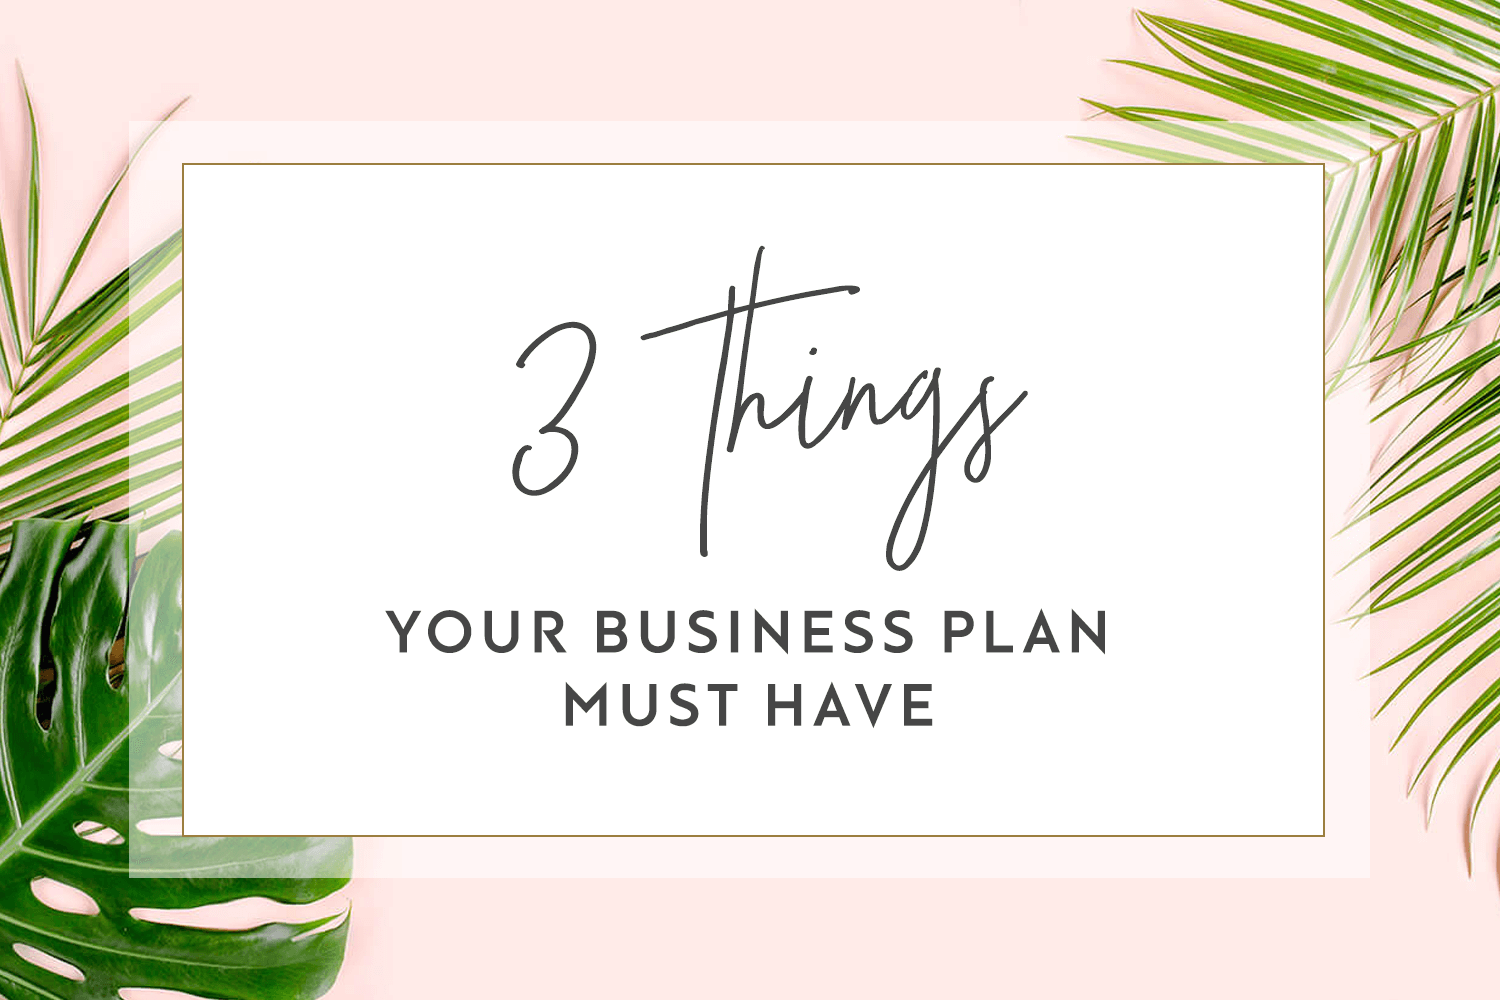 3-things-business-plan-must-have